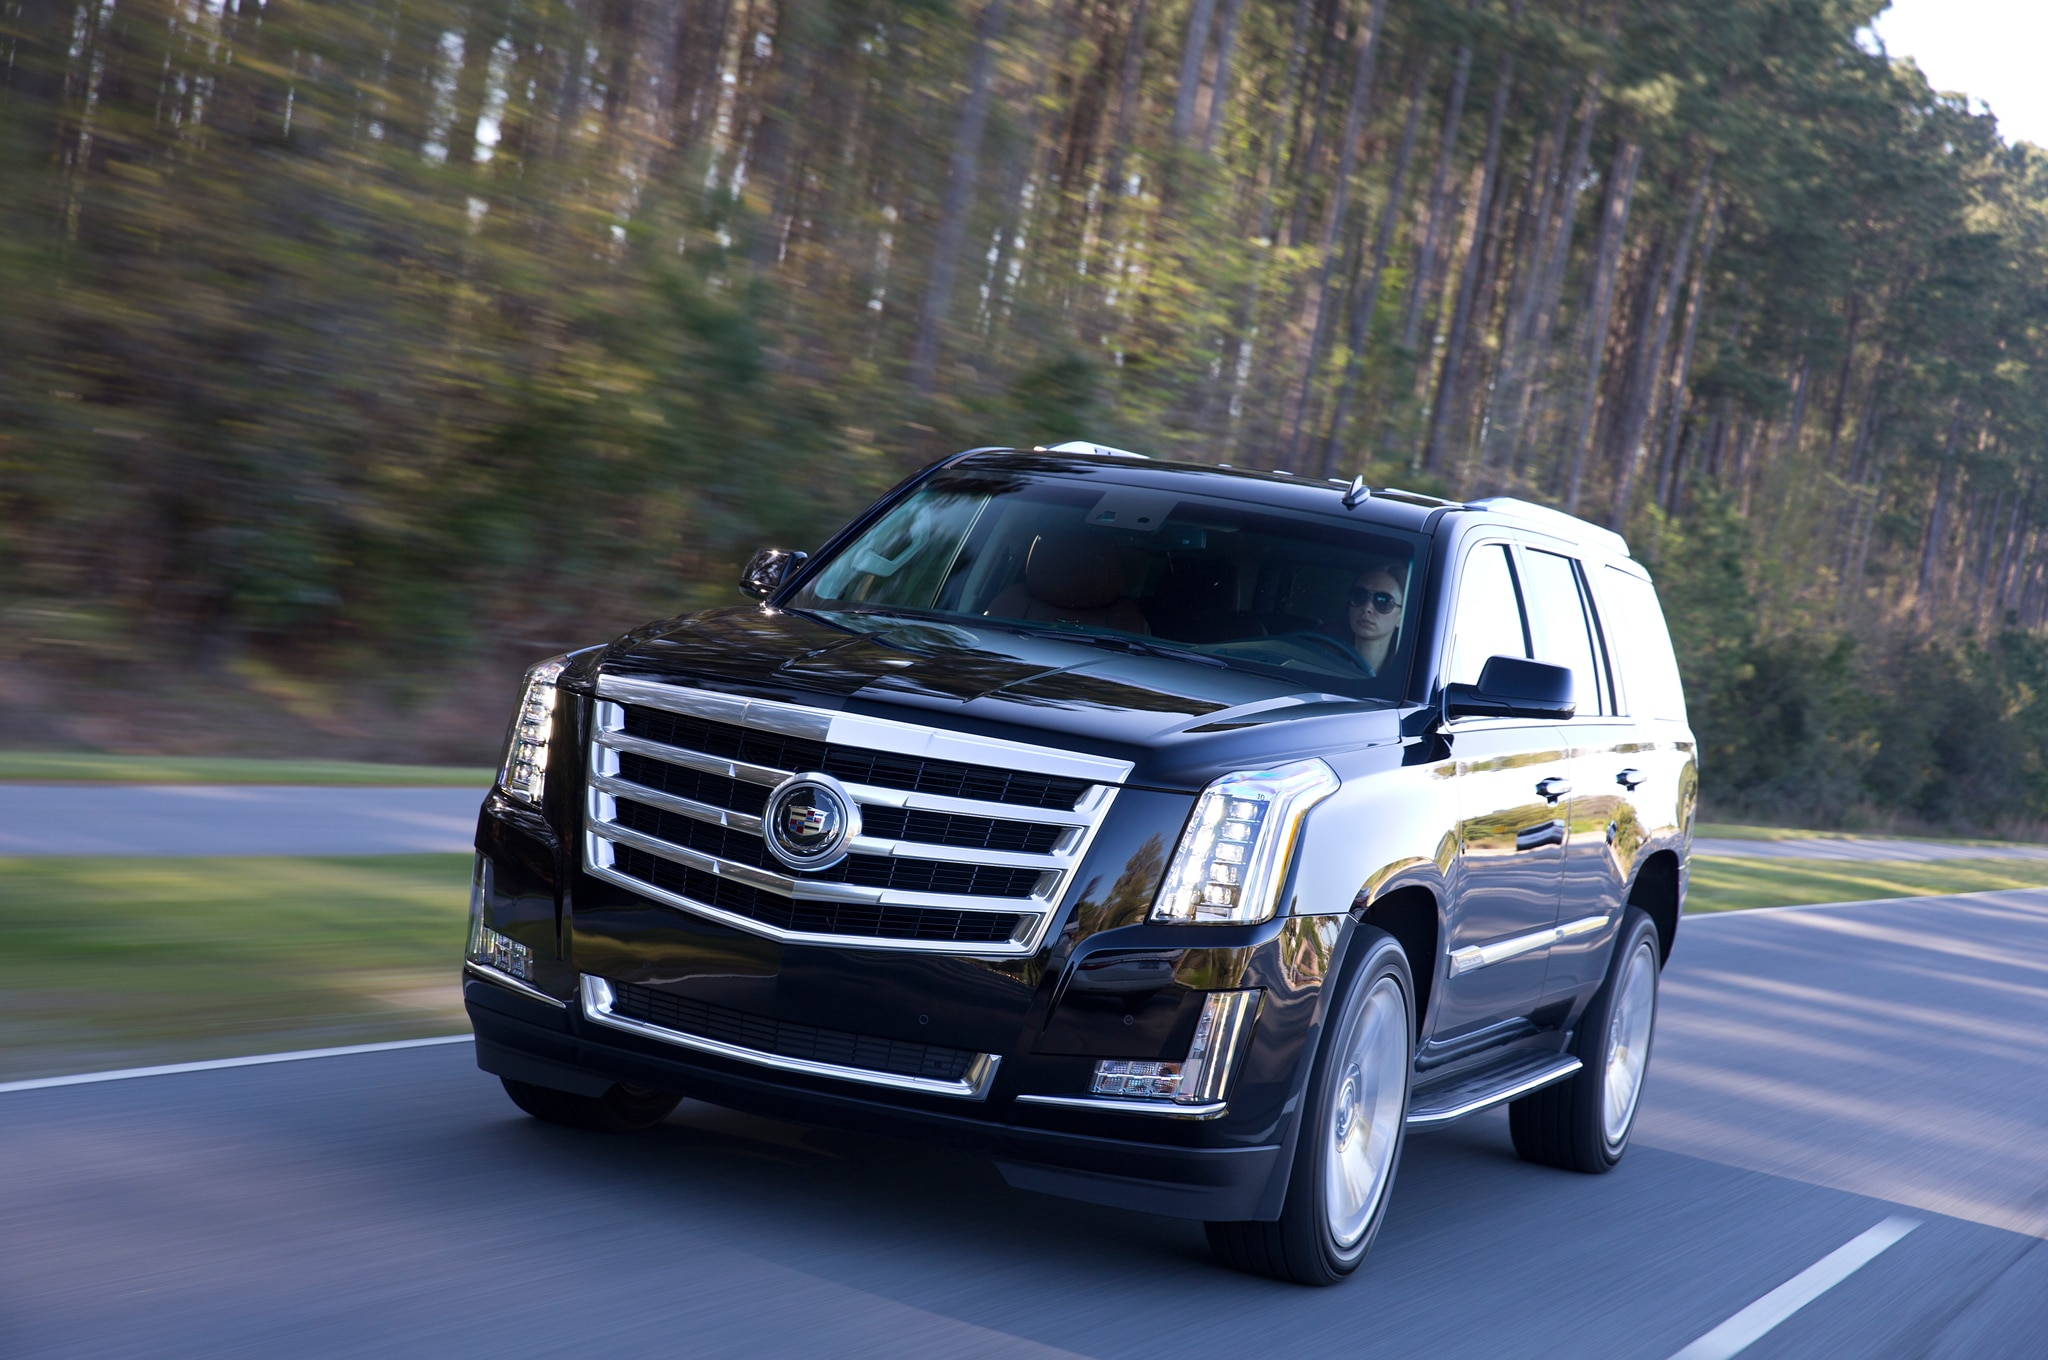 2015 cadillac escalade first look automobile magazine. Black Bedroom Furniture Sets. Home Design Ideas